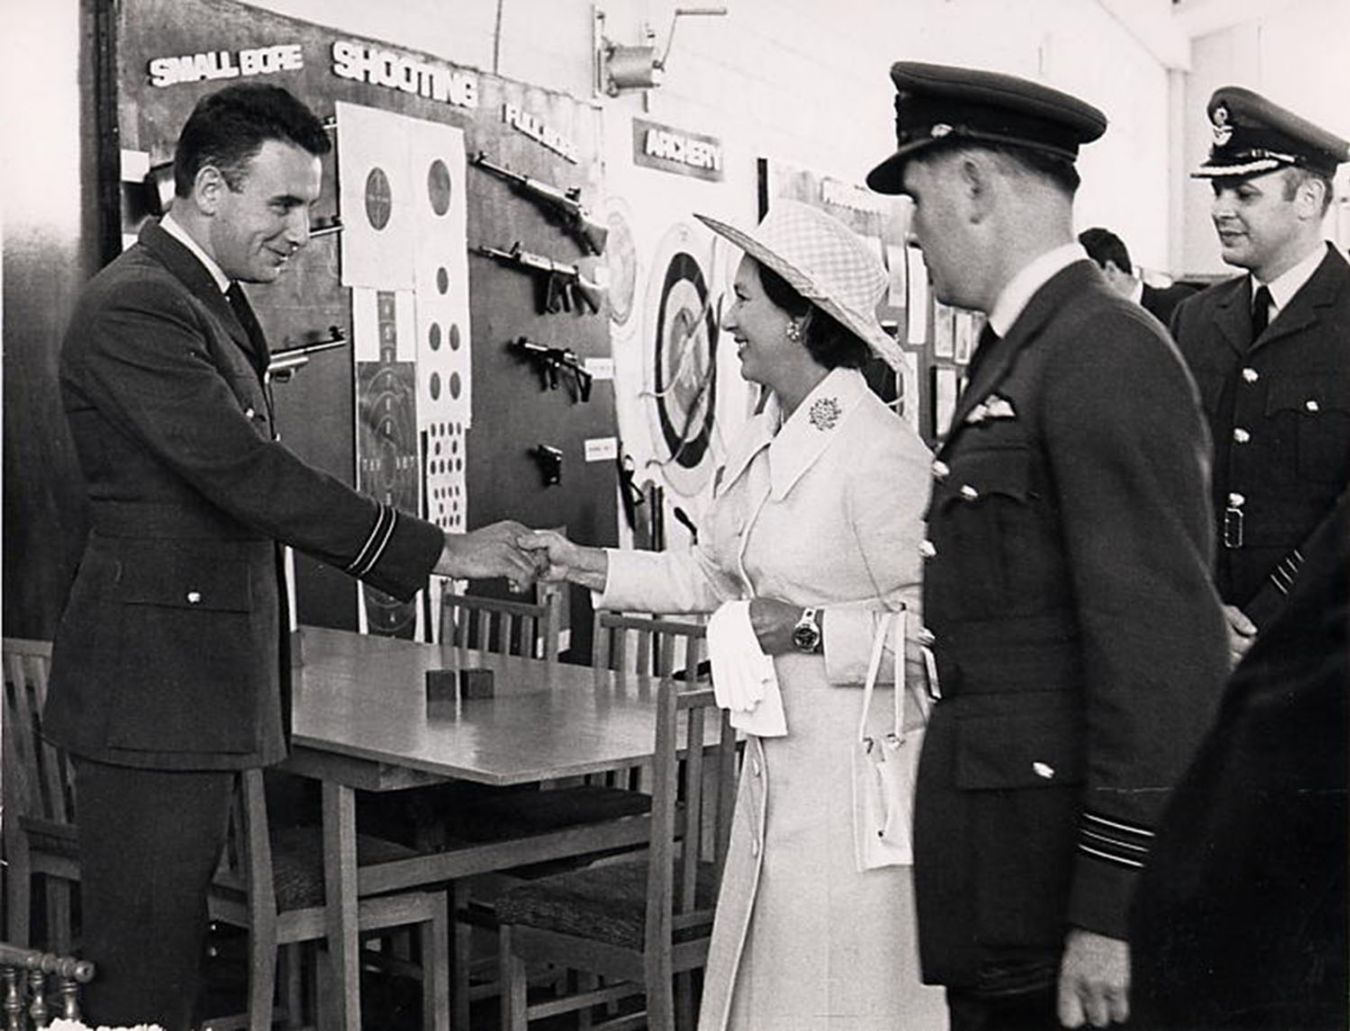 At the invitation of the Ministry of Defence Andrew took up a commission as a Flight Lieutenant in the RAF and is show here being presented to Her Royal Highness The Princess Margaret, Countess of Snowdon.